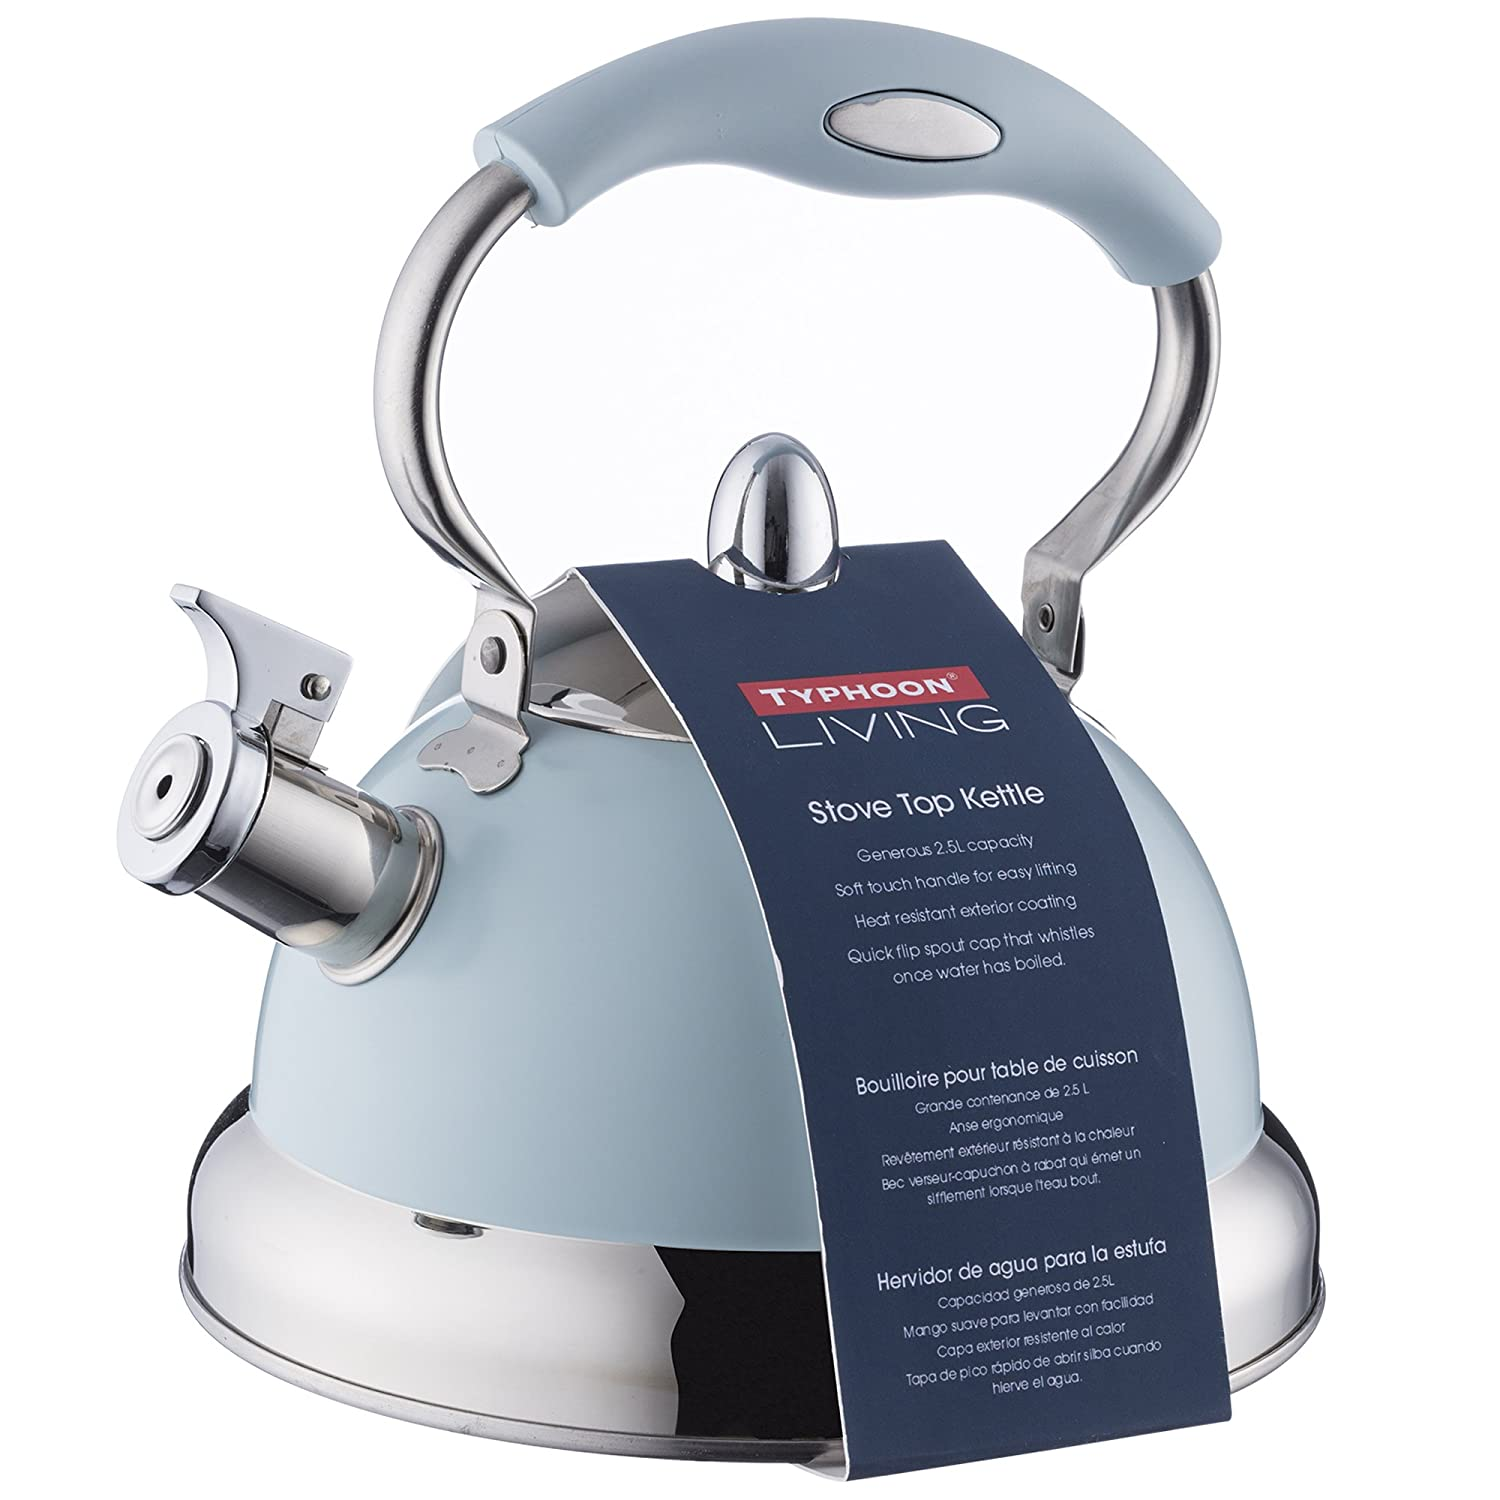 Typhoon Living Blue Stove Top Kettle 85Fl Oz